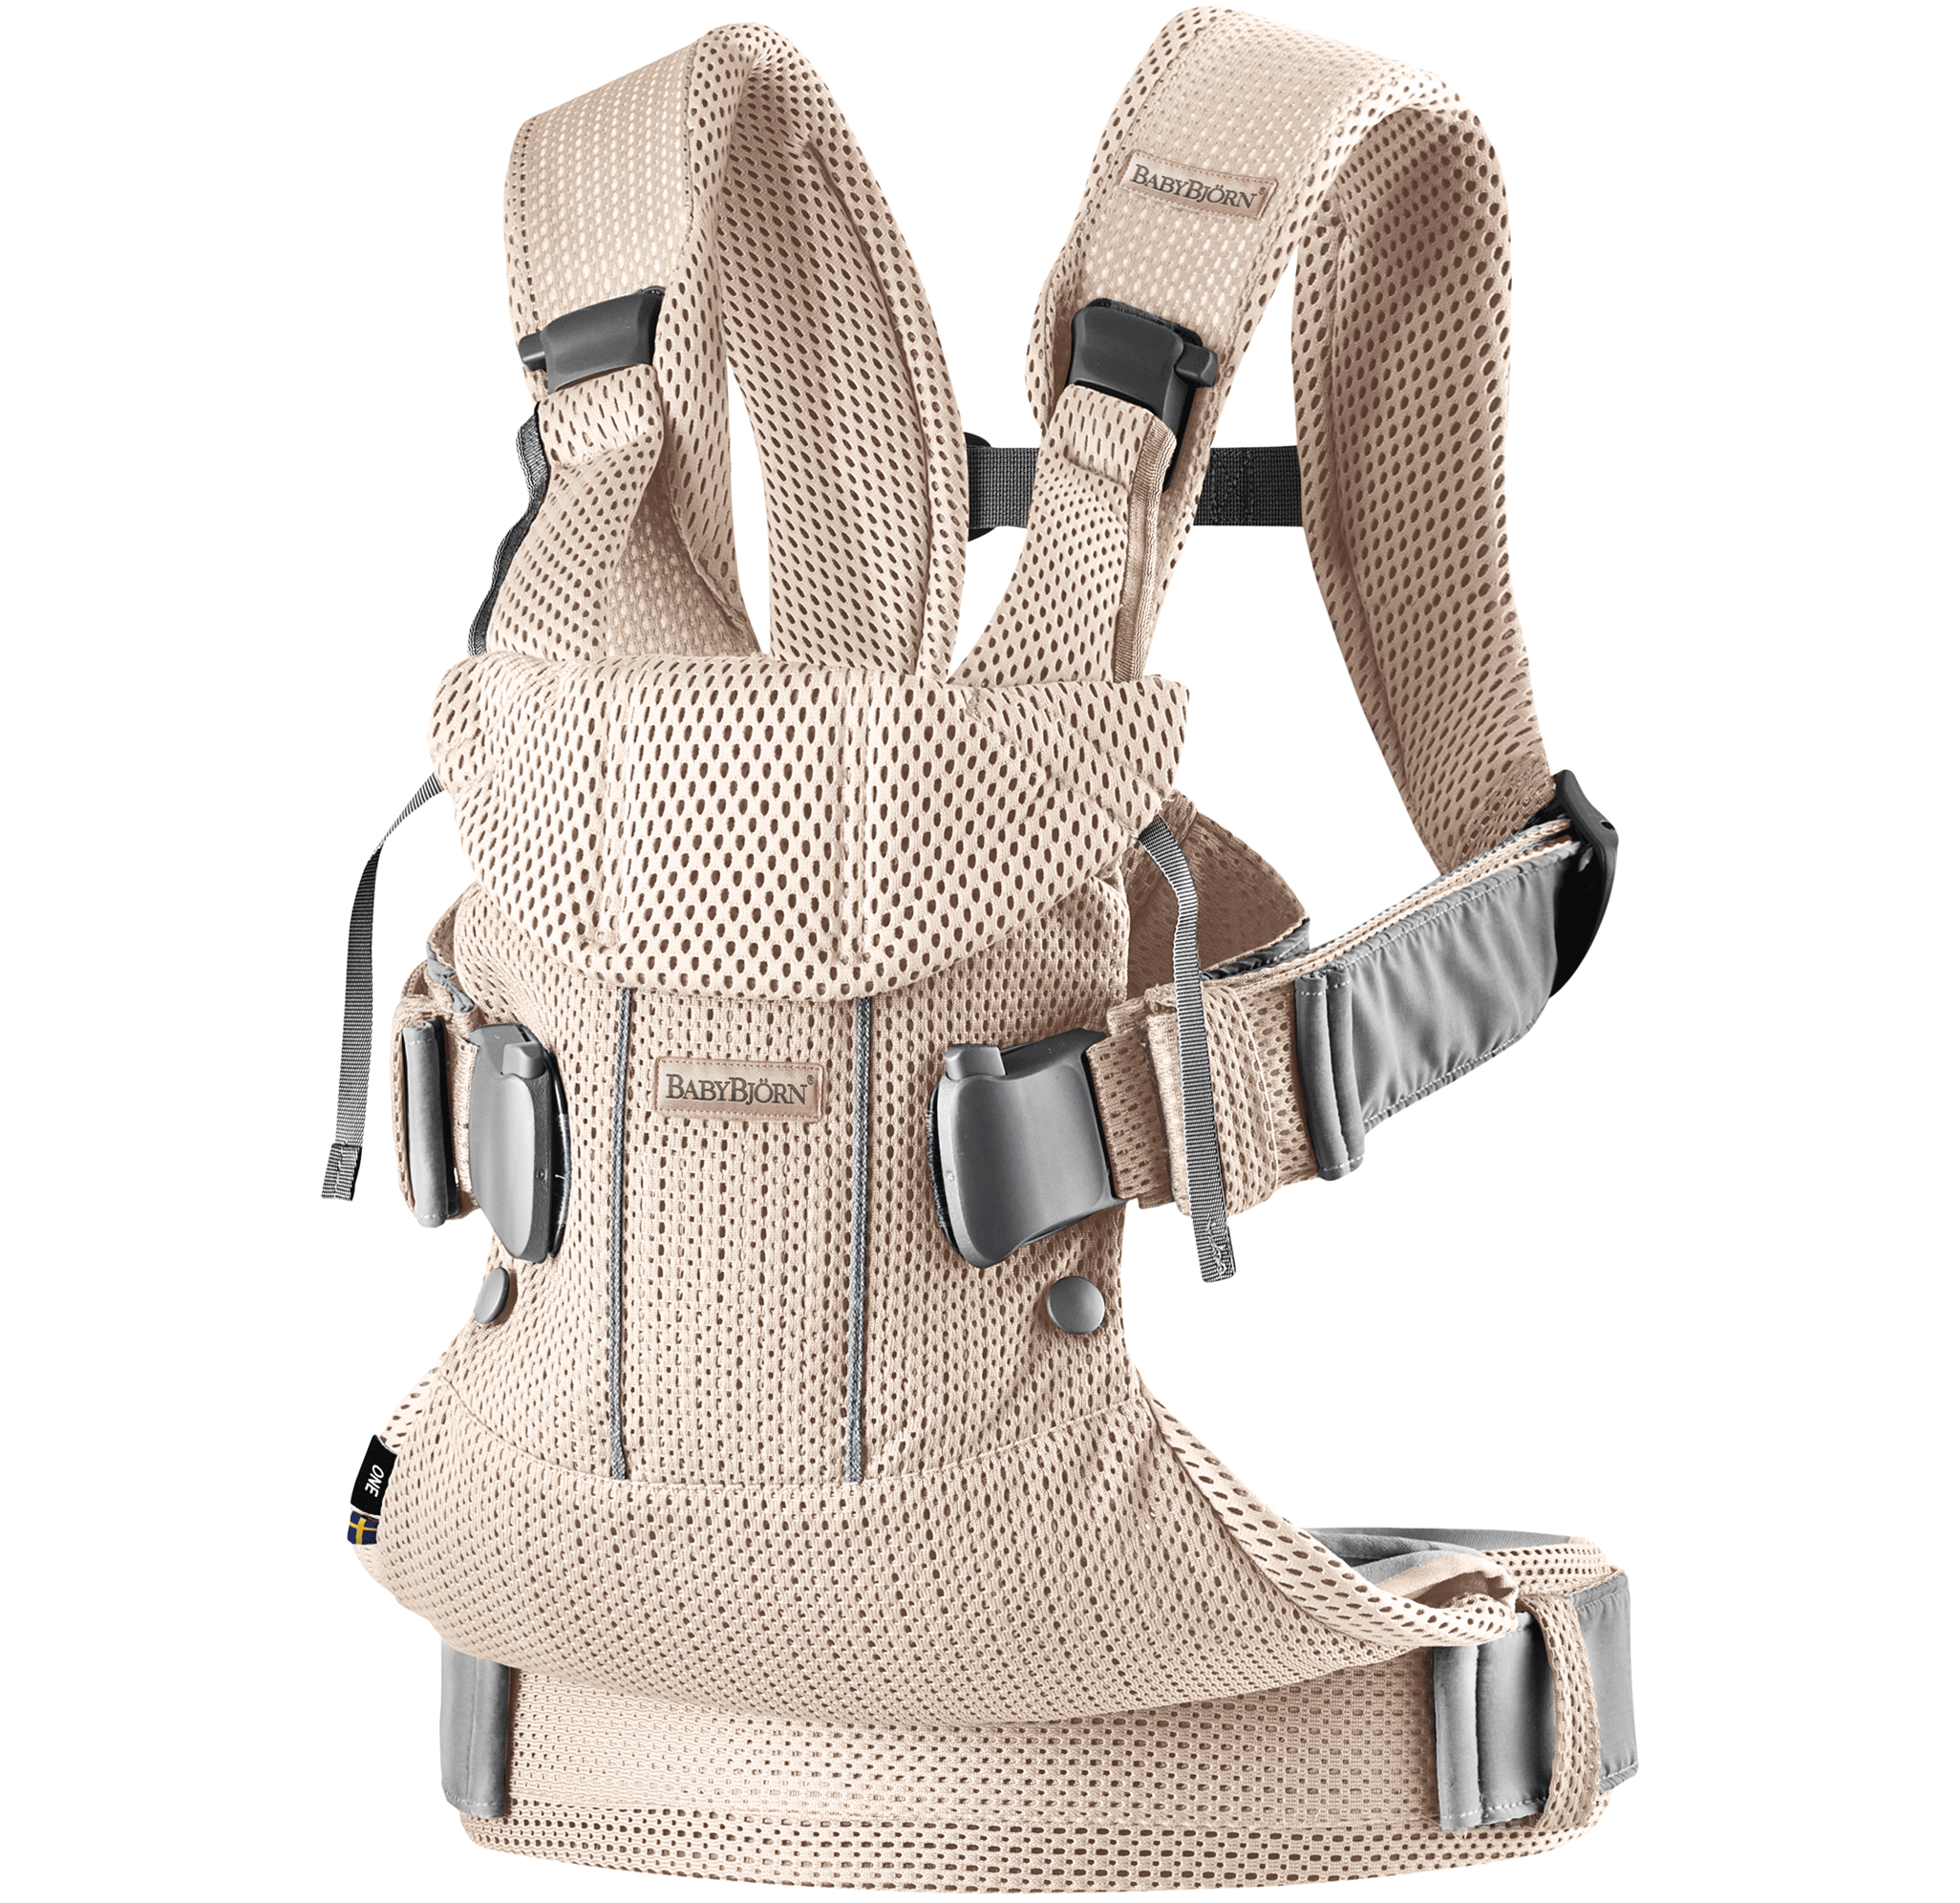 BABYBJÖRN Baby Carrier One Air in Pearly Pink 3D Mesh. Airy and cool mesh that dries rapidly.